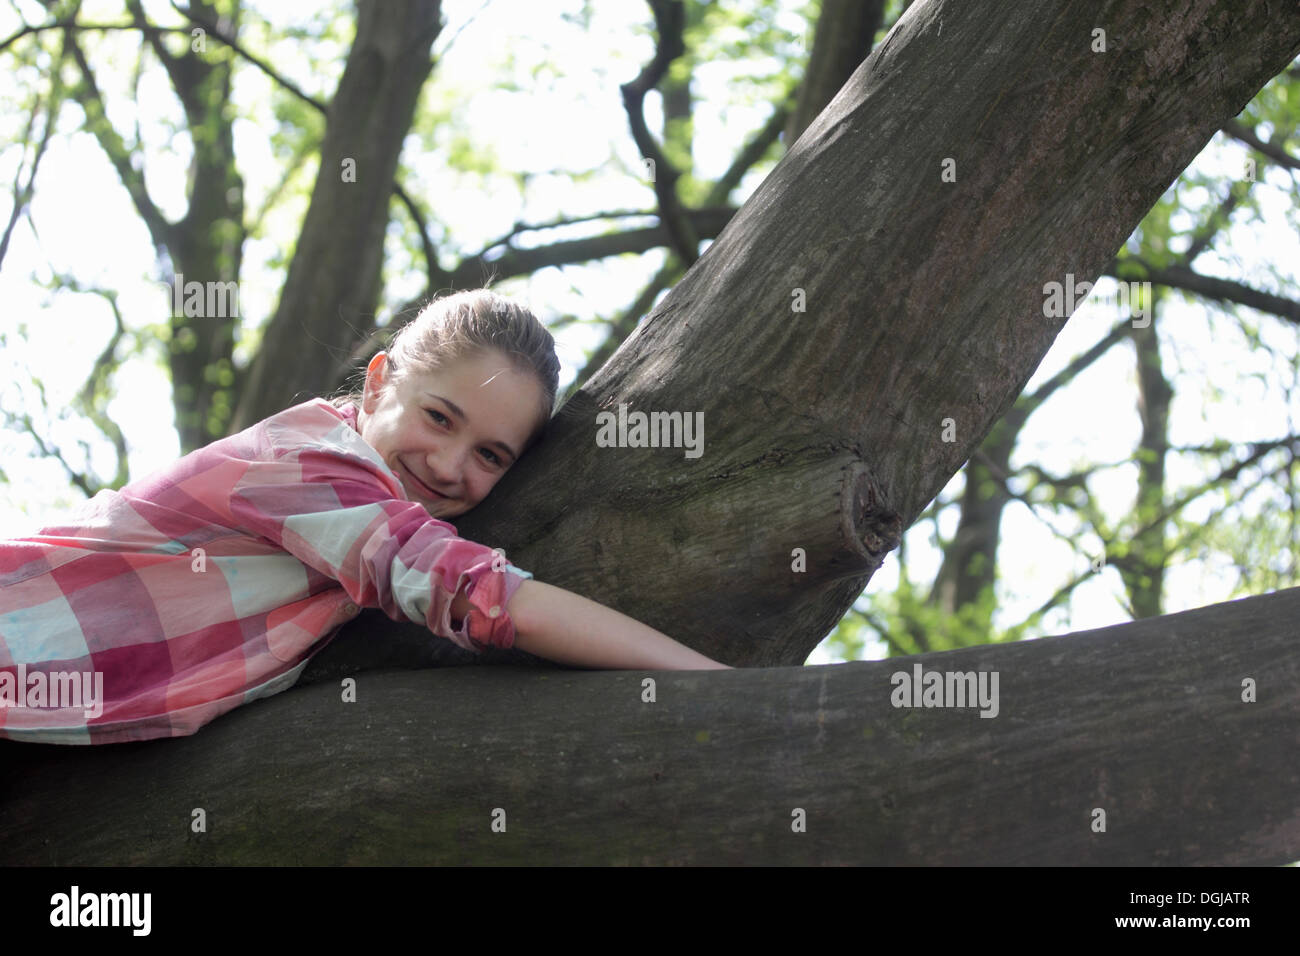 Portrait of young girl lying on top of tree branch - Stock Image